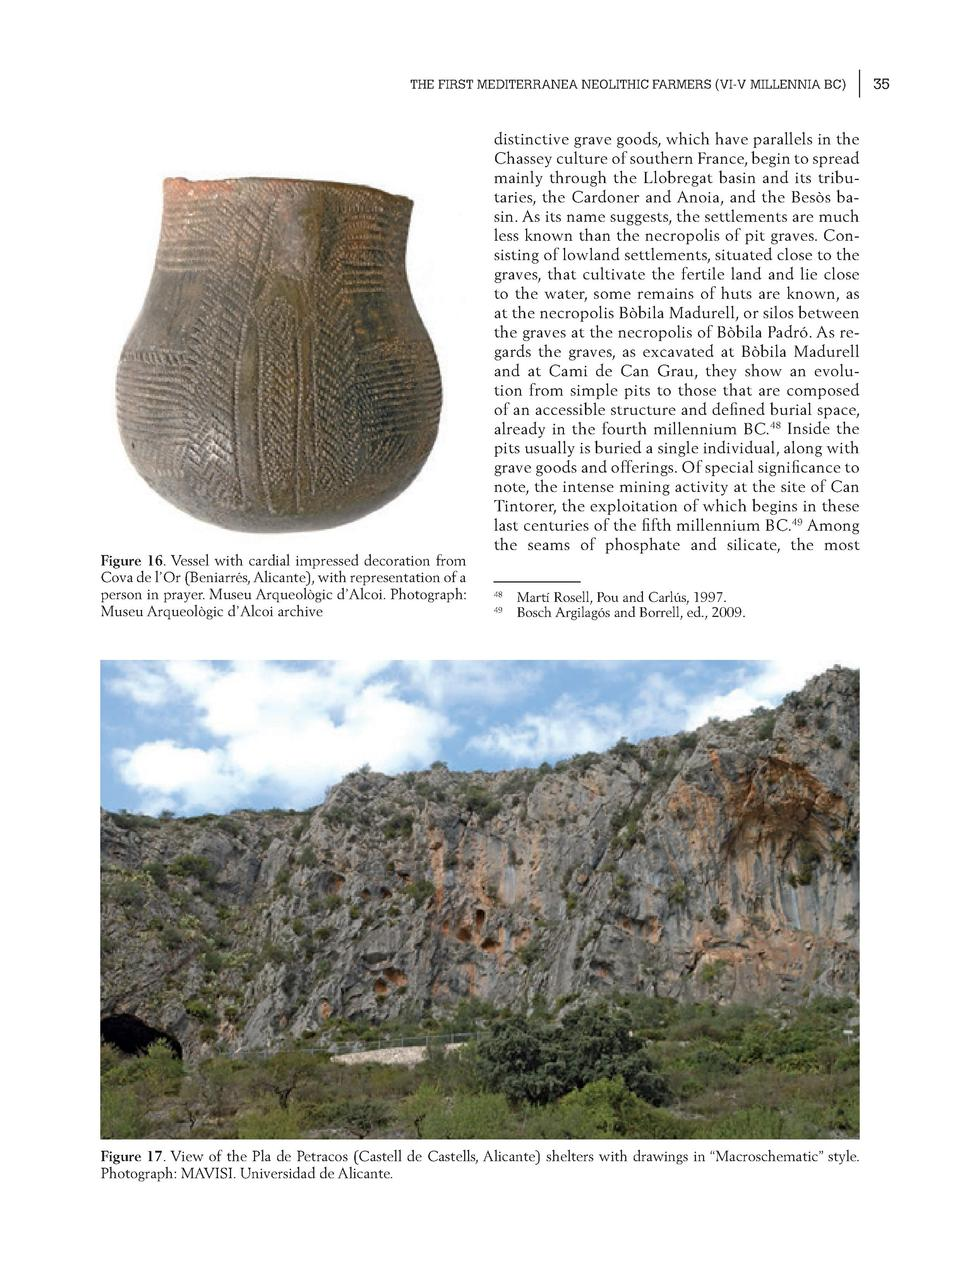 THE FIRST MEDITERRANEA NEOLITHIC FARMERS  VI-V MILLENNIA BC   Figure 16. Vessel with cardial impressed decoration from Cov...